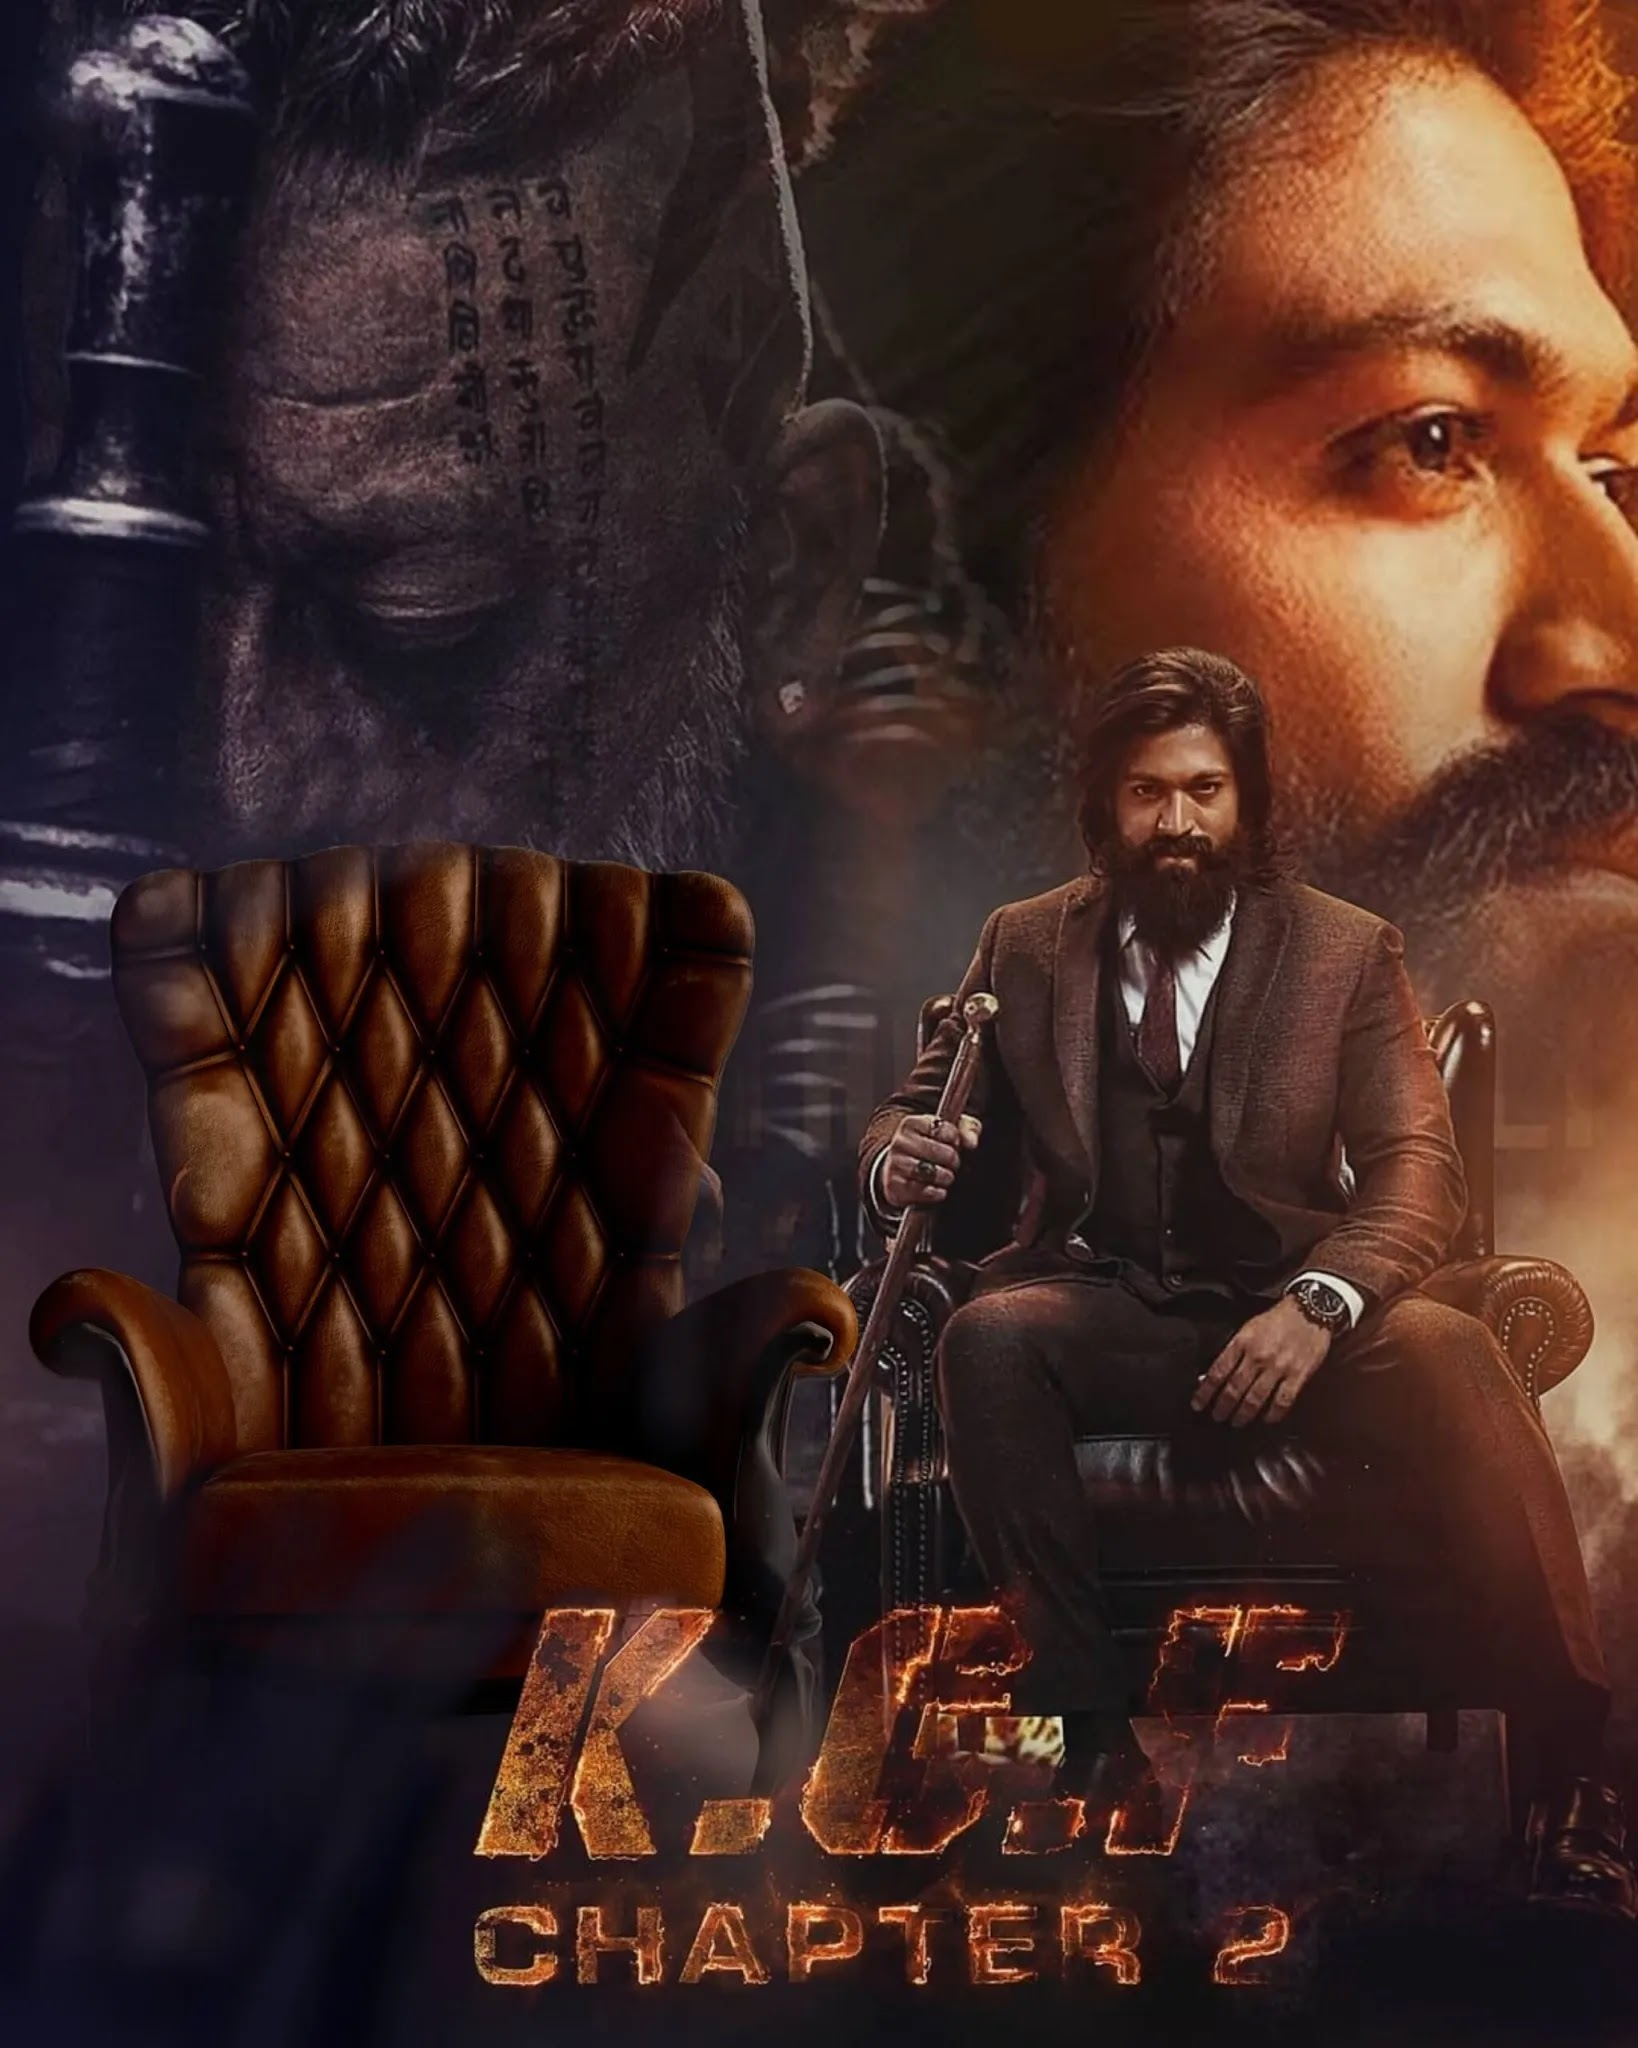 KGF Chapter 2 Photo Editing Background Images HD Download